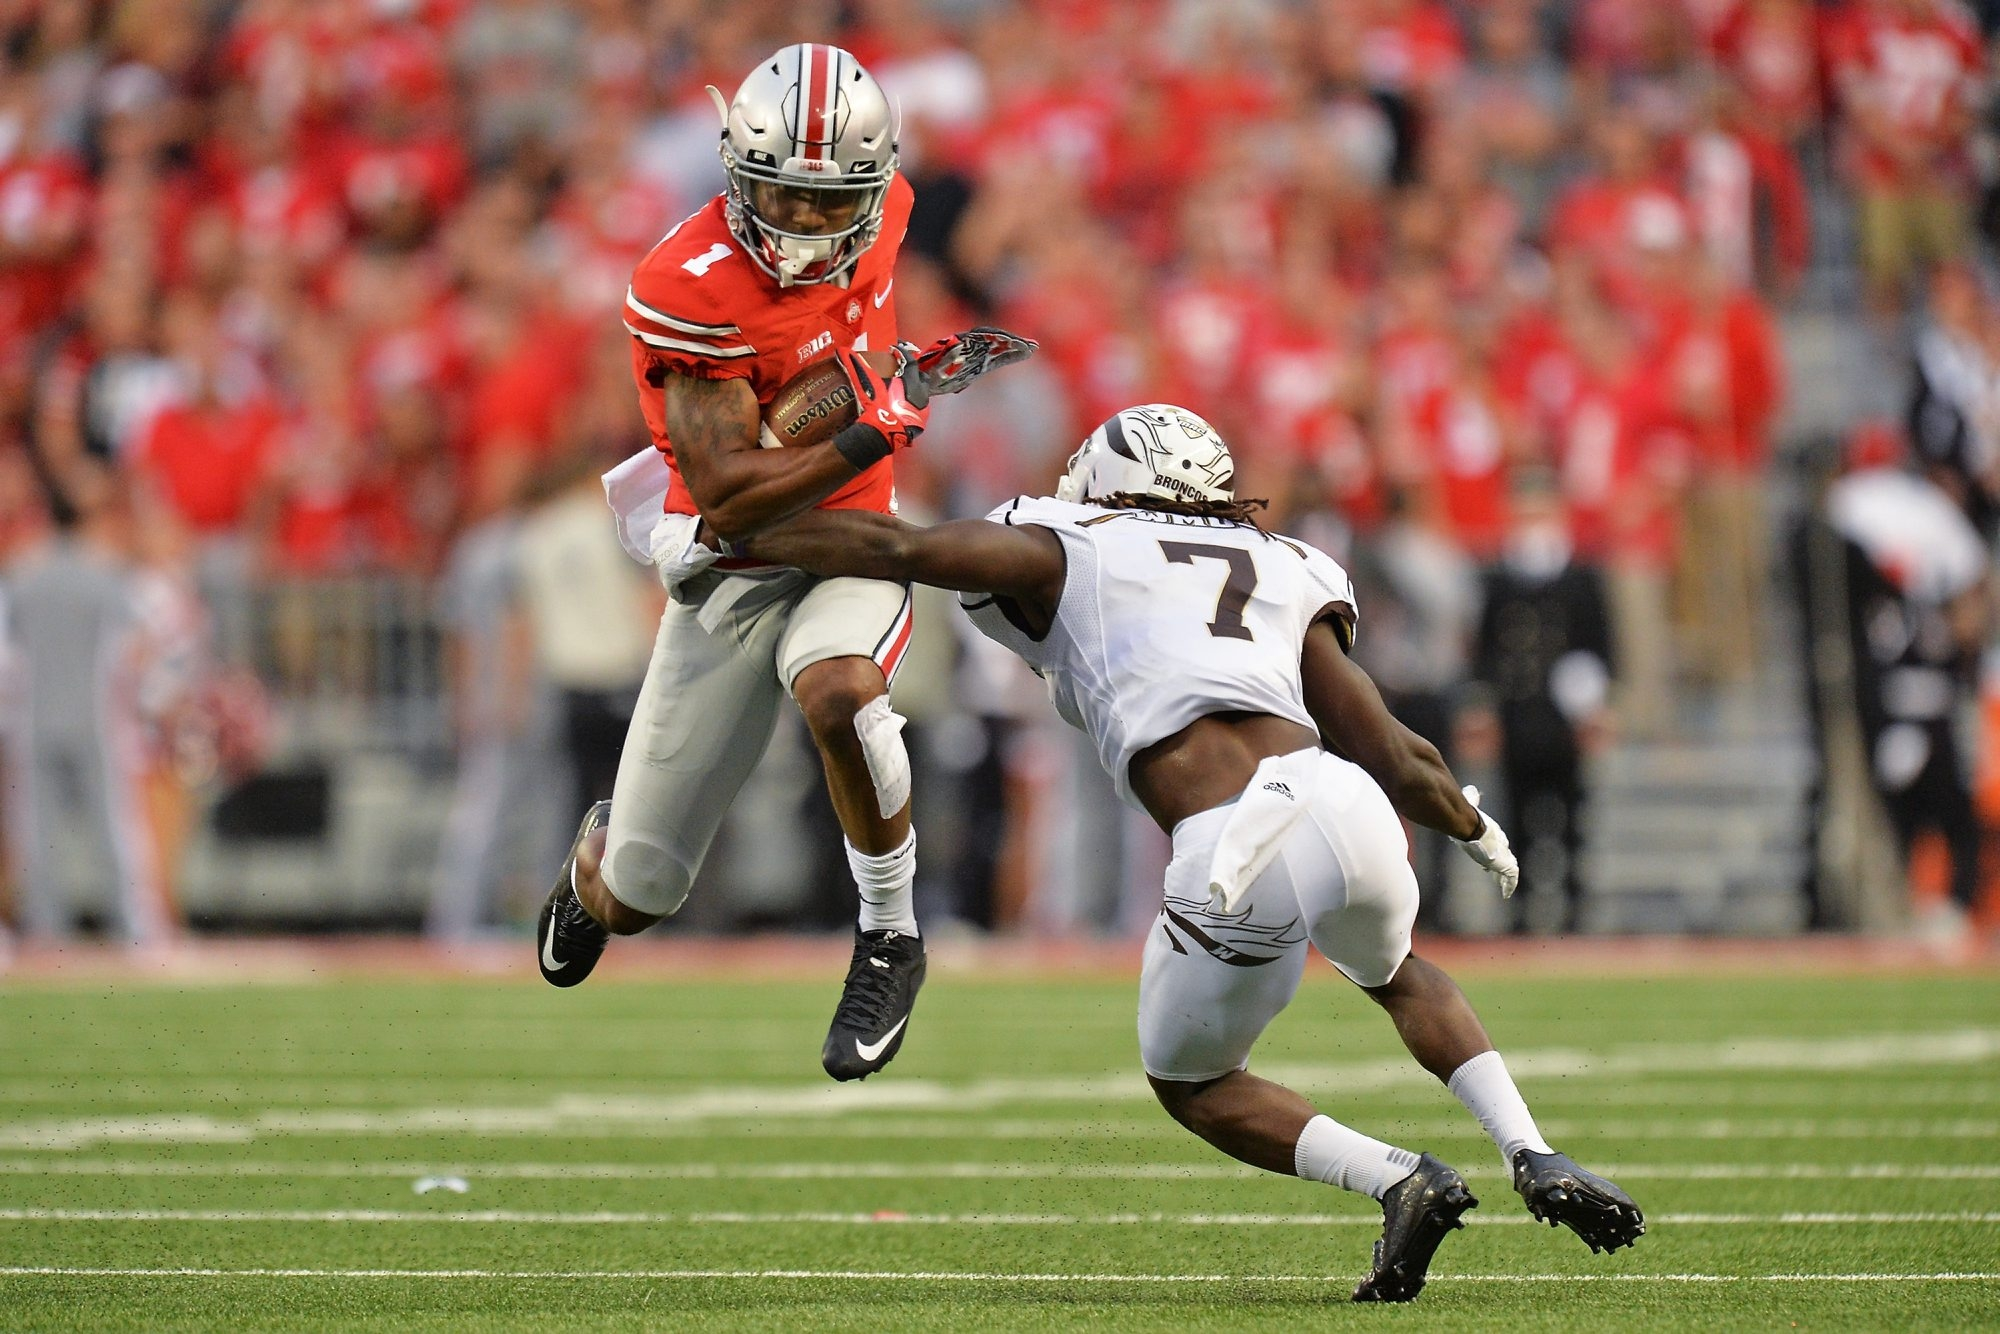 Ohio State's Braxton Miller looms as one of the more intriguing players in the draft after his conversion from quarterback to wide receiver. (Getty Images)